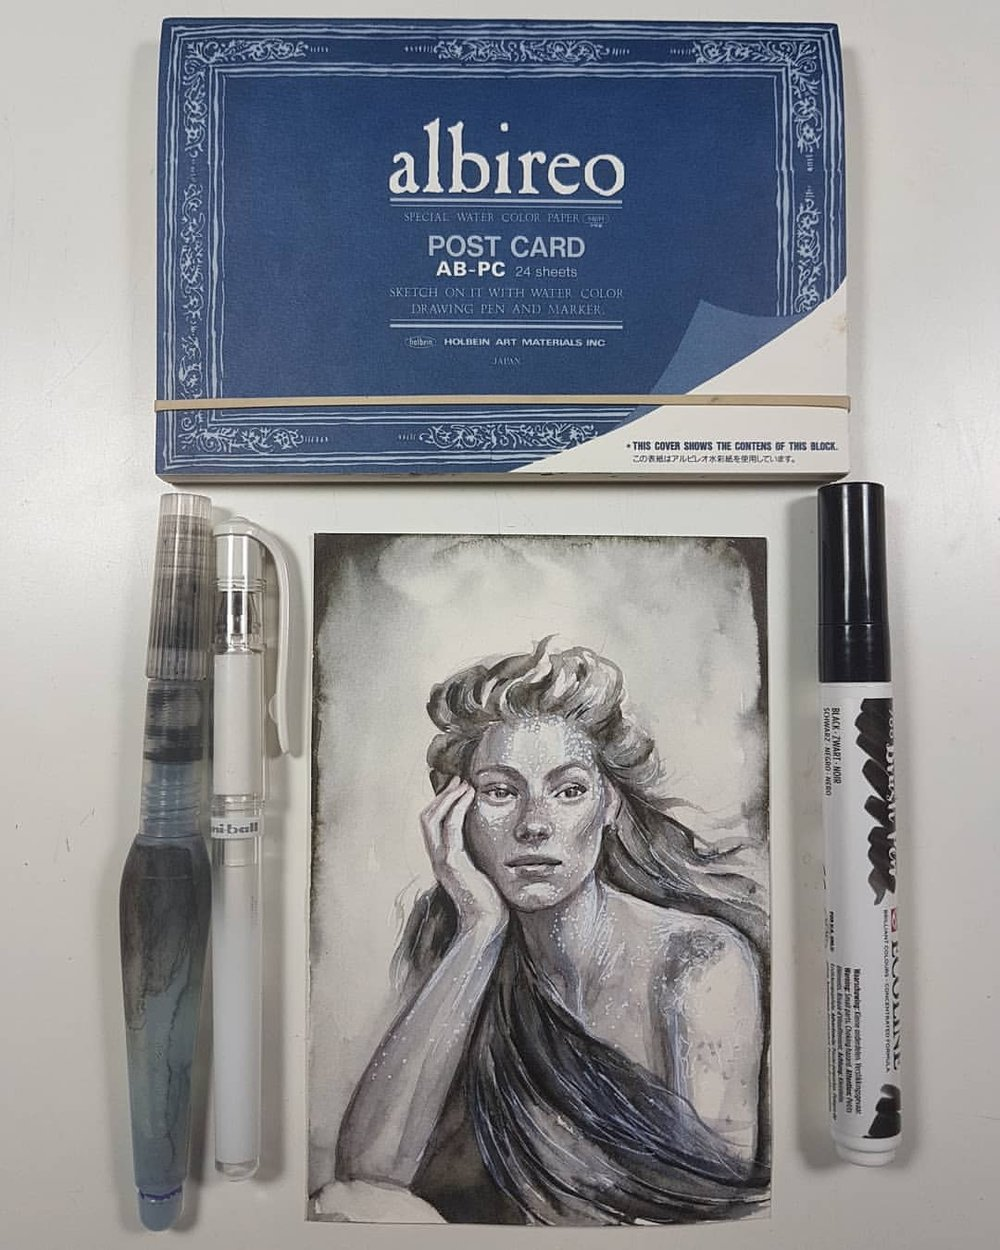 Day 27 of #30daysofhands using black Ecoline Brush marker, Pentel Aquabrush, white gel pen and Tuscan Red Col-erase pencil on Holbein Albireo watercolour postcard.    #kunst #art #inkwash #portraitstudy #bw #practicemakesperfect #ecoline #hands #australianartist #melbourneartist #april2018 #belindaillustrates #instagood #inkdrawing